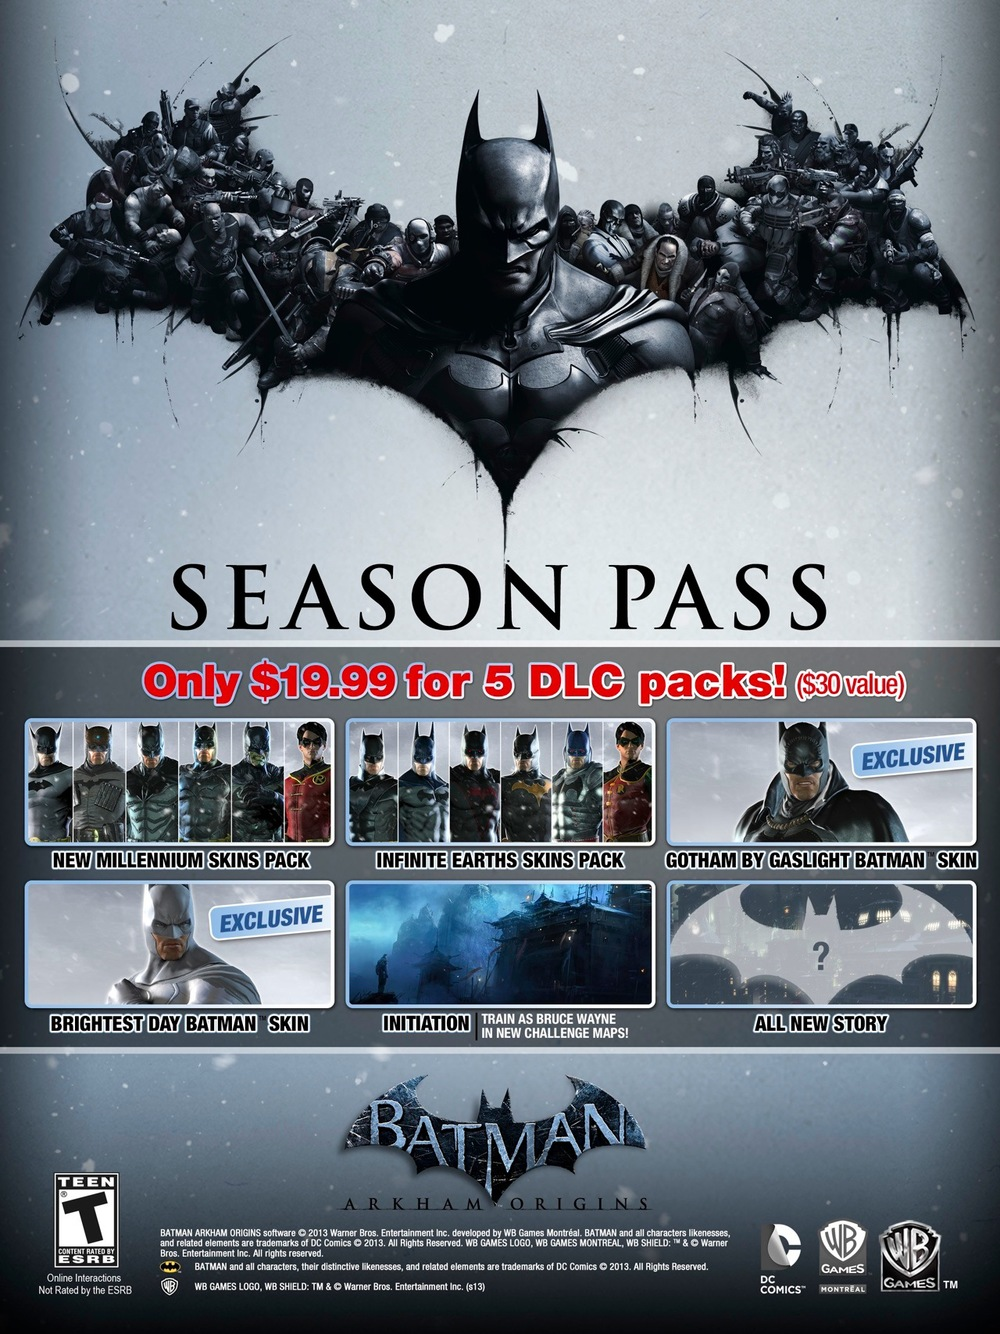 Batman_ArkhamOrigins_SeasonPass_US.jpg